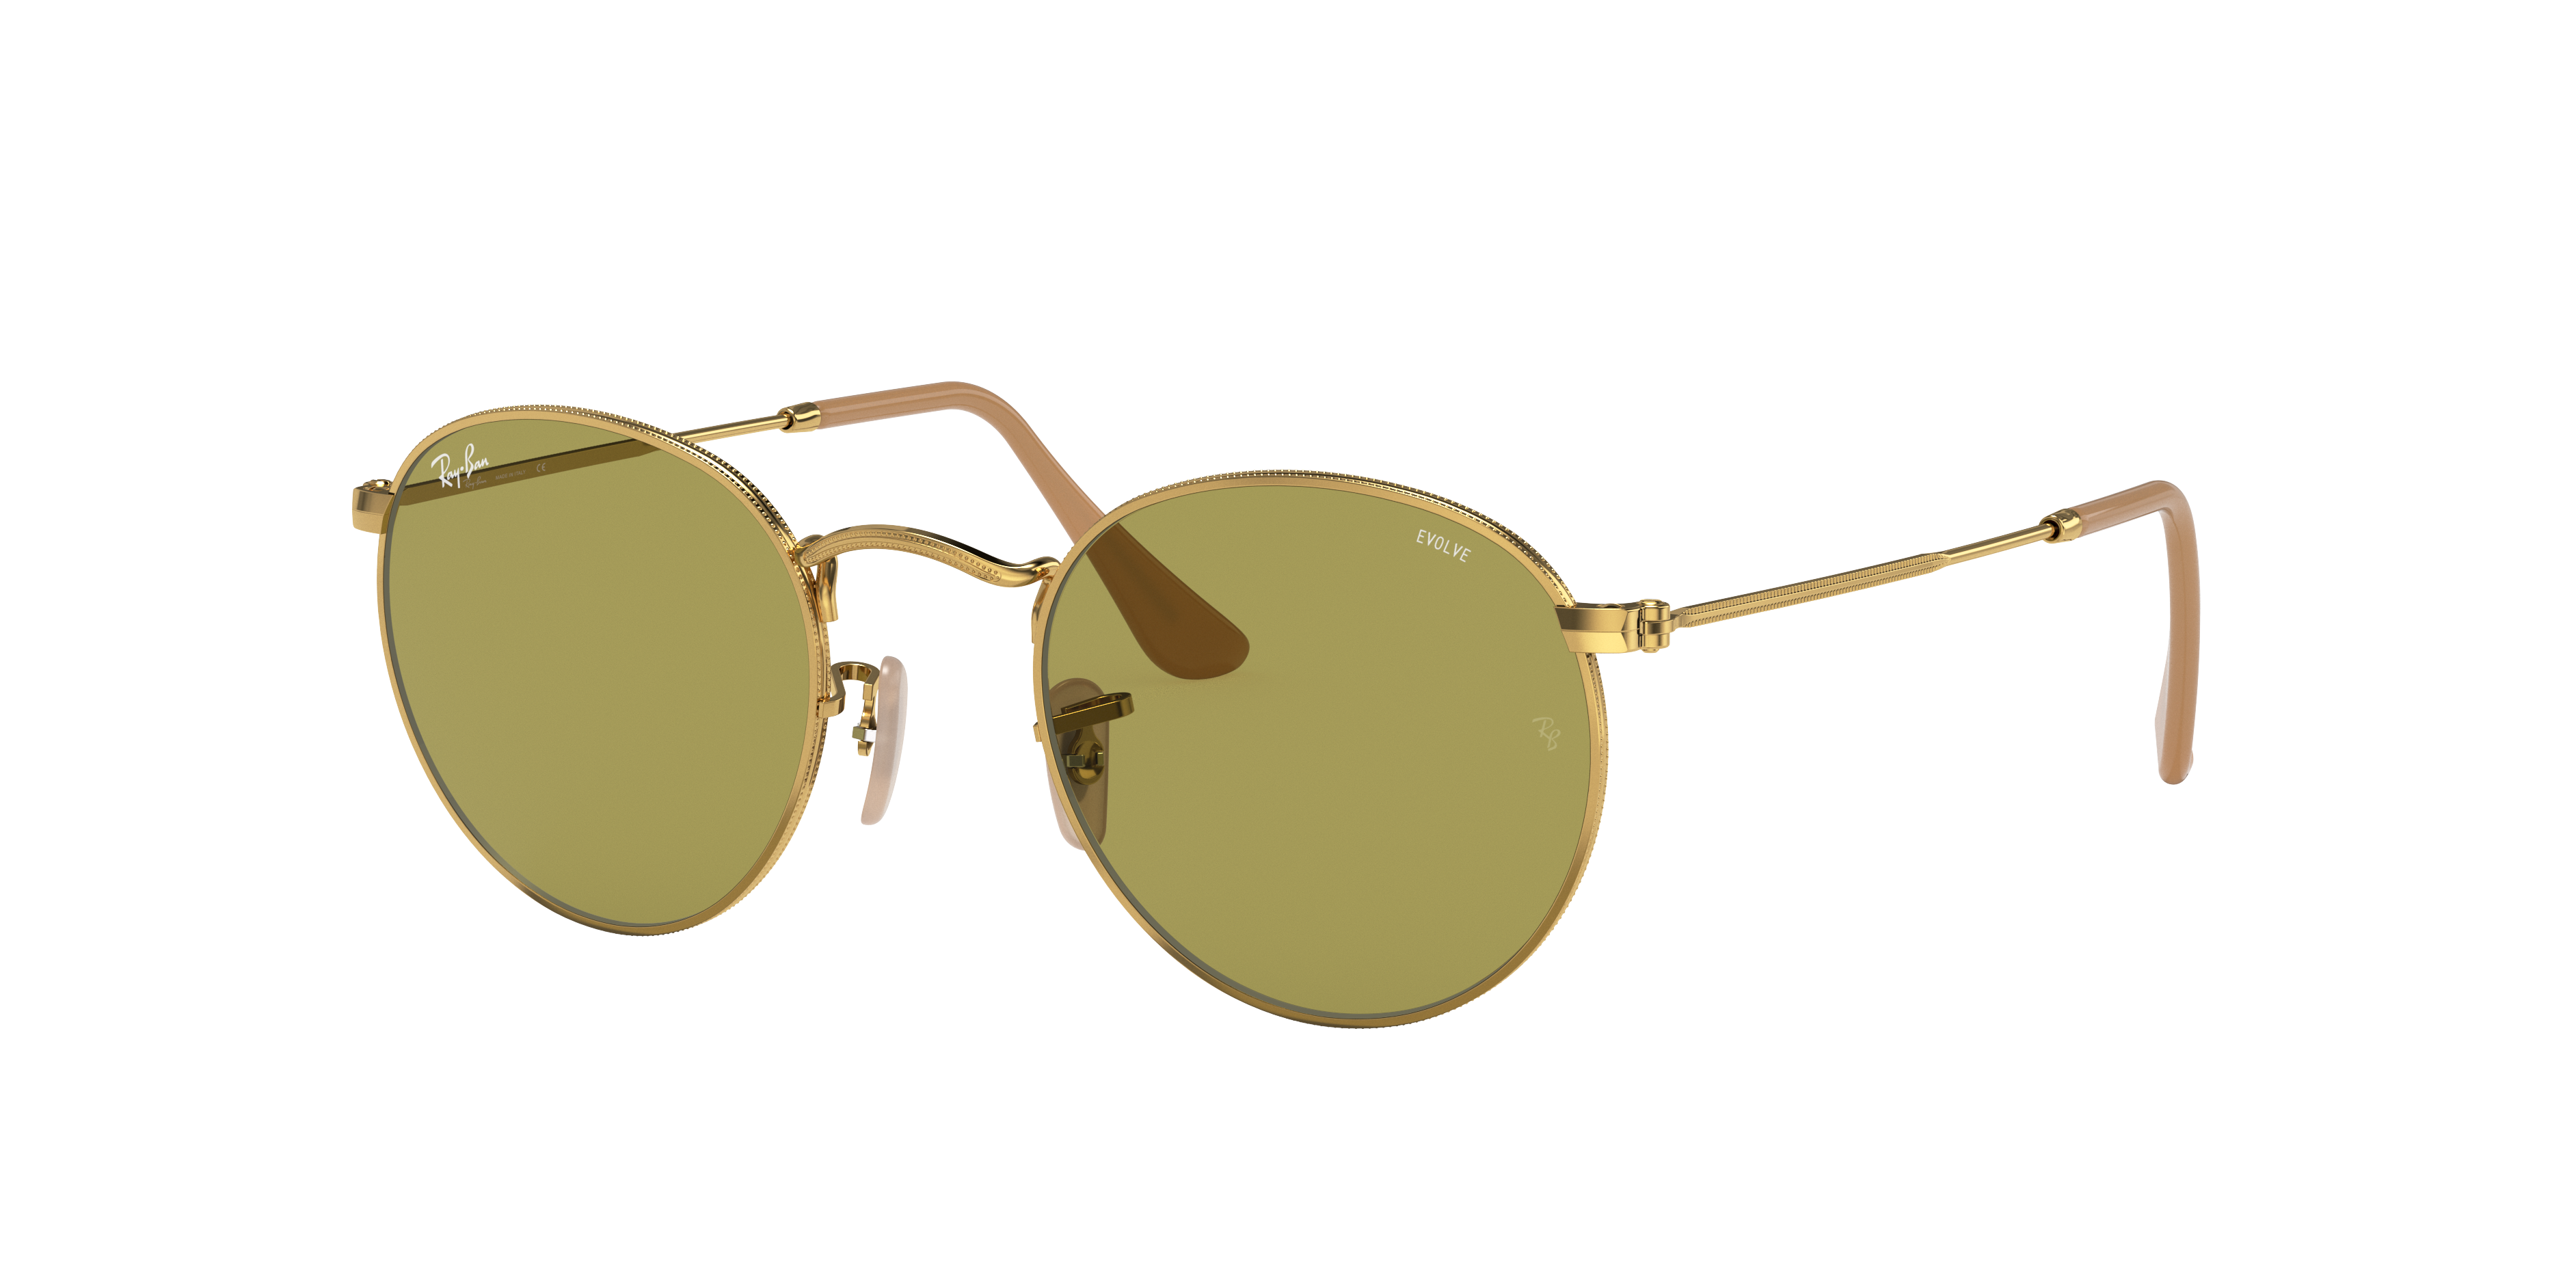 Ray-Ban Round Washed Evolve Gold, Green Lenses - RB3447